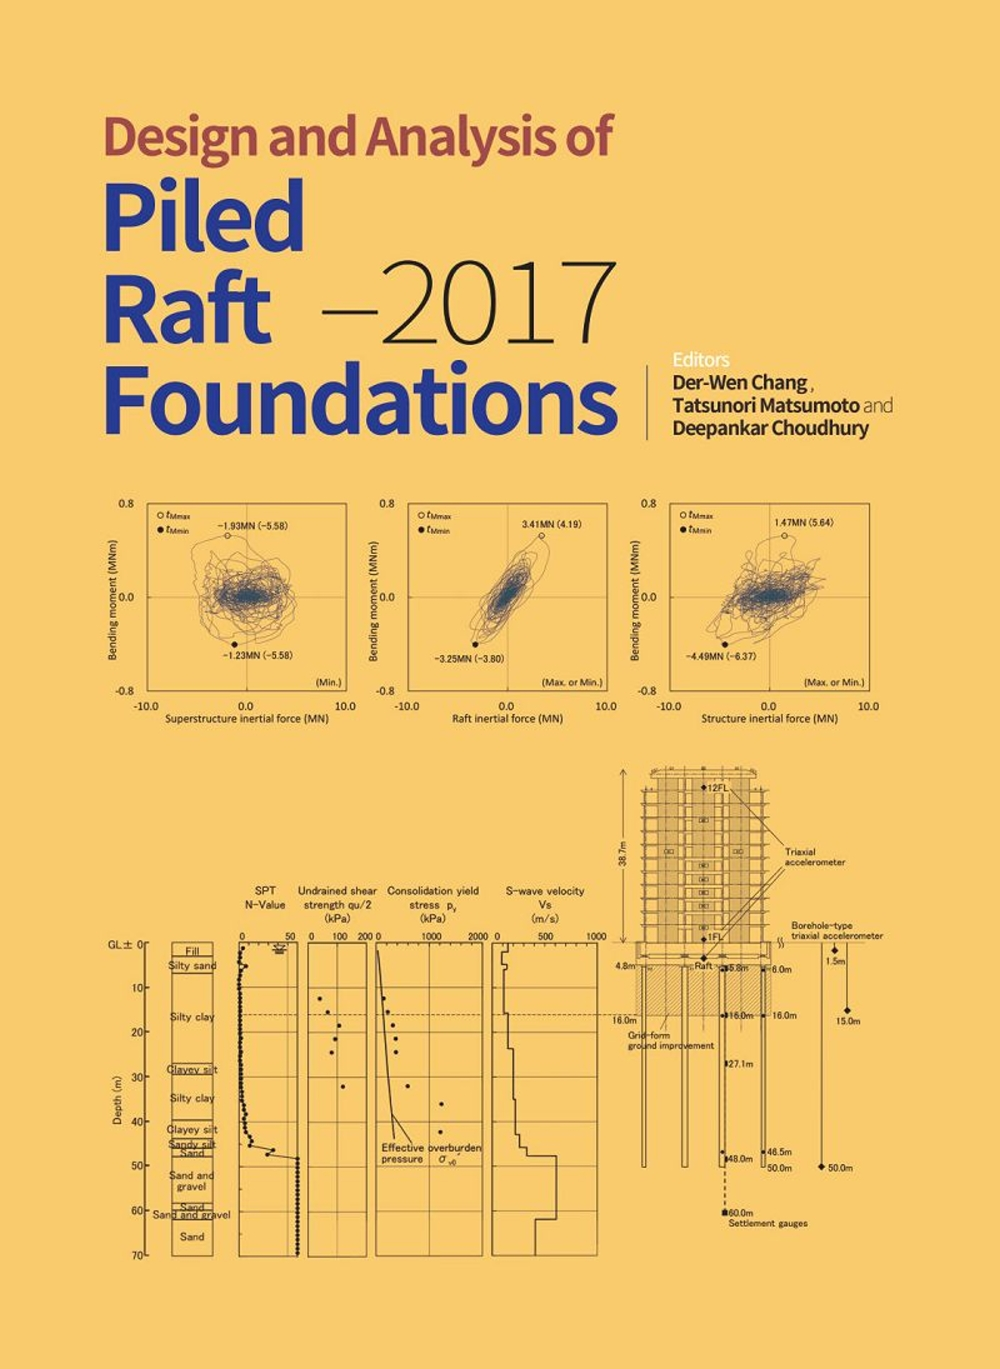 Design and Analysis of Piled Raft Foundations-2017